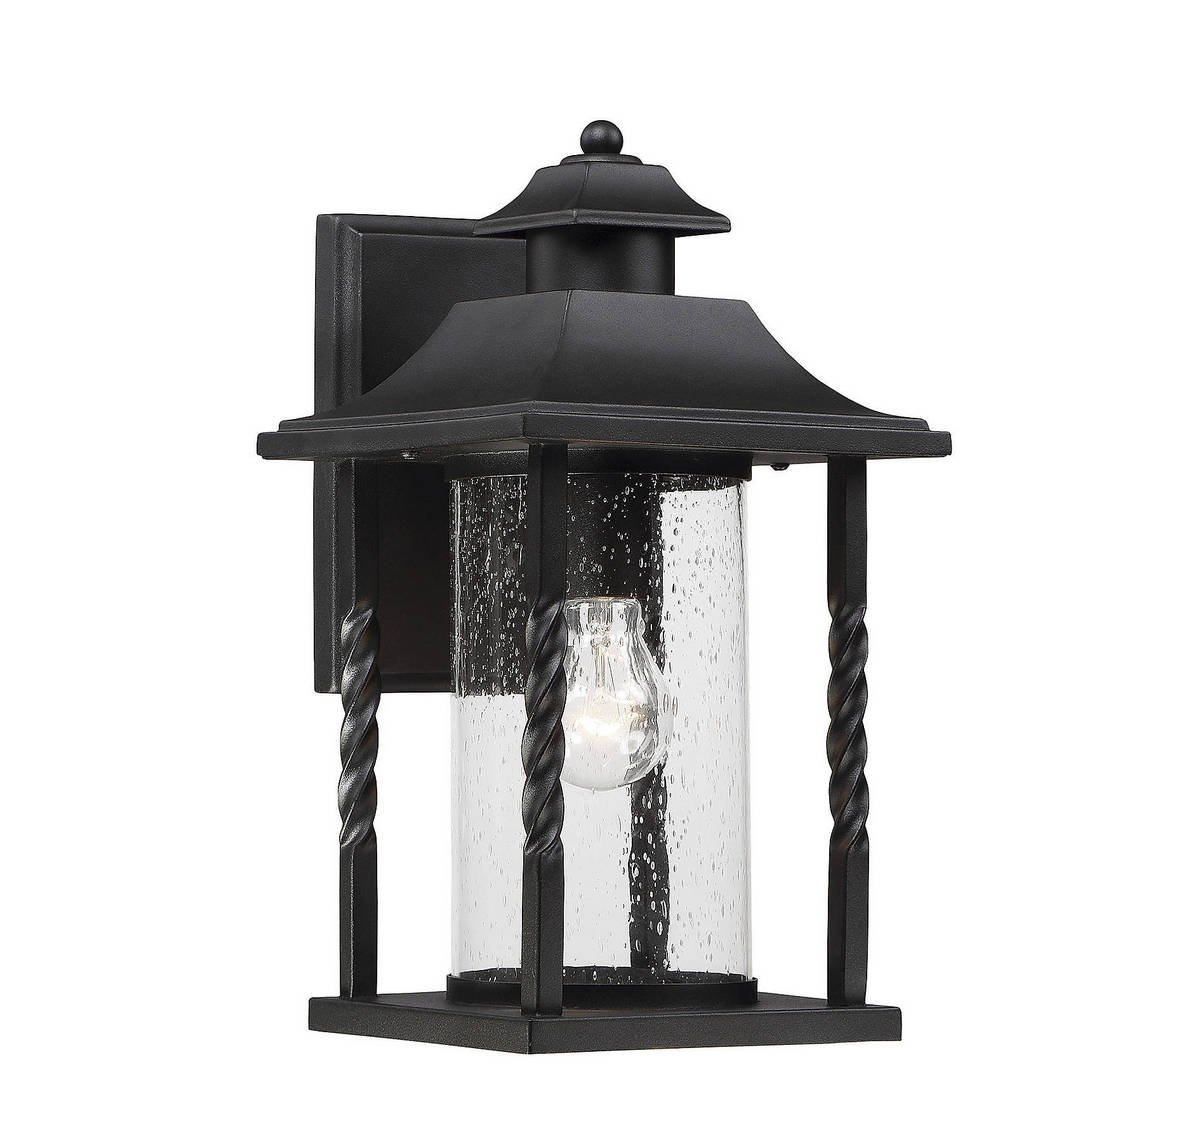 Savoy House 5-1231-BK Dorado 14'' Outdoor Wall Lantern in Textured Black